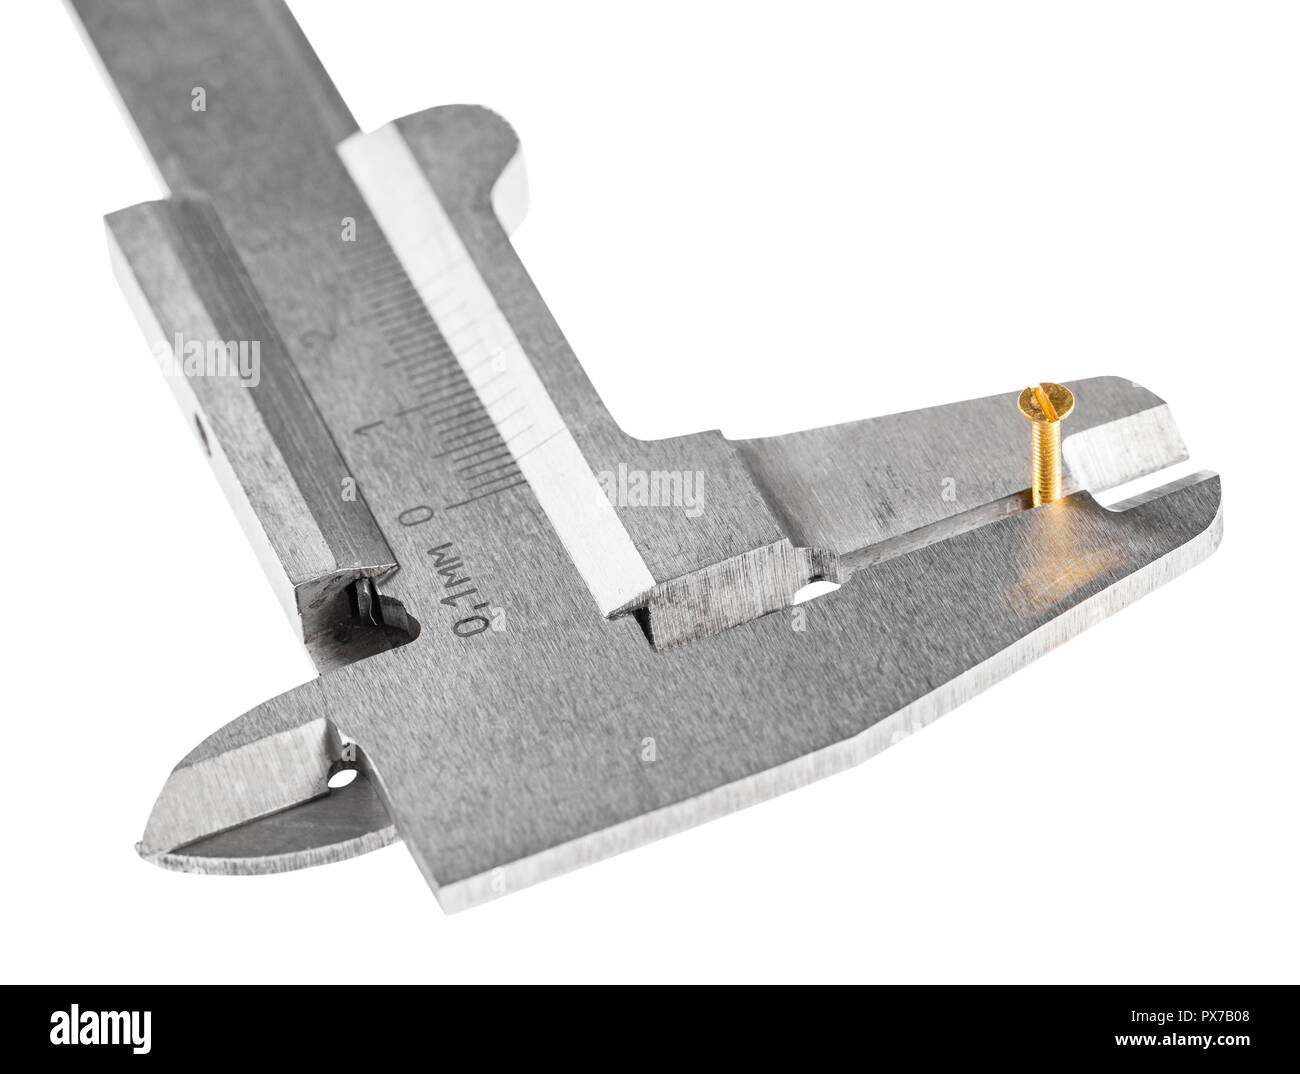 above view of old steel callipers measures brass screw close up isolated on white background - Stock Image